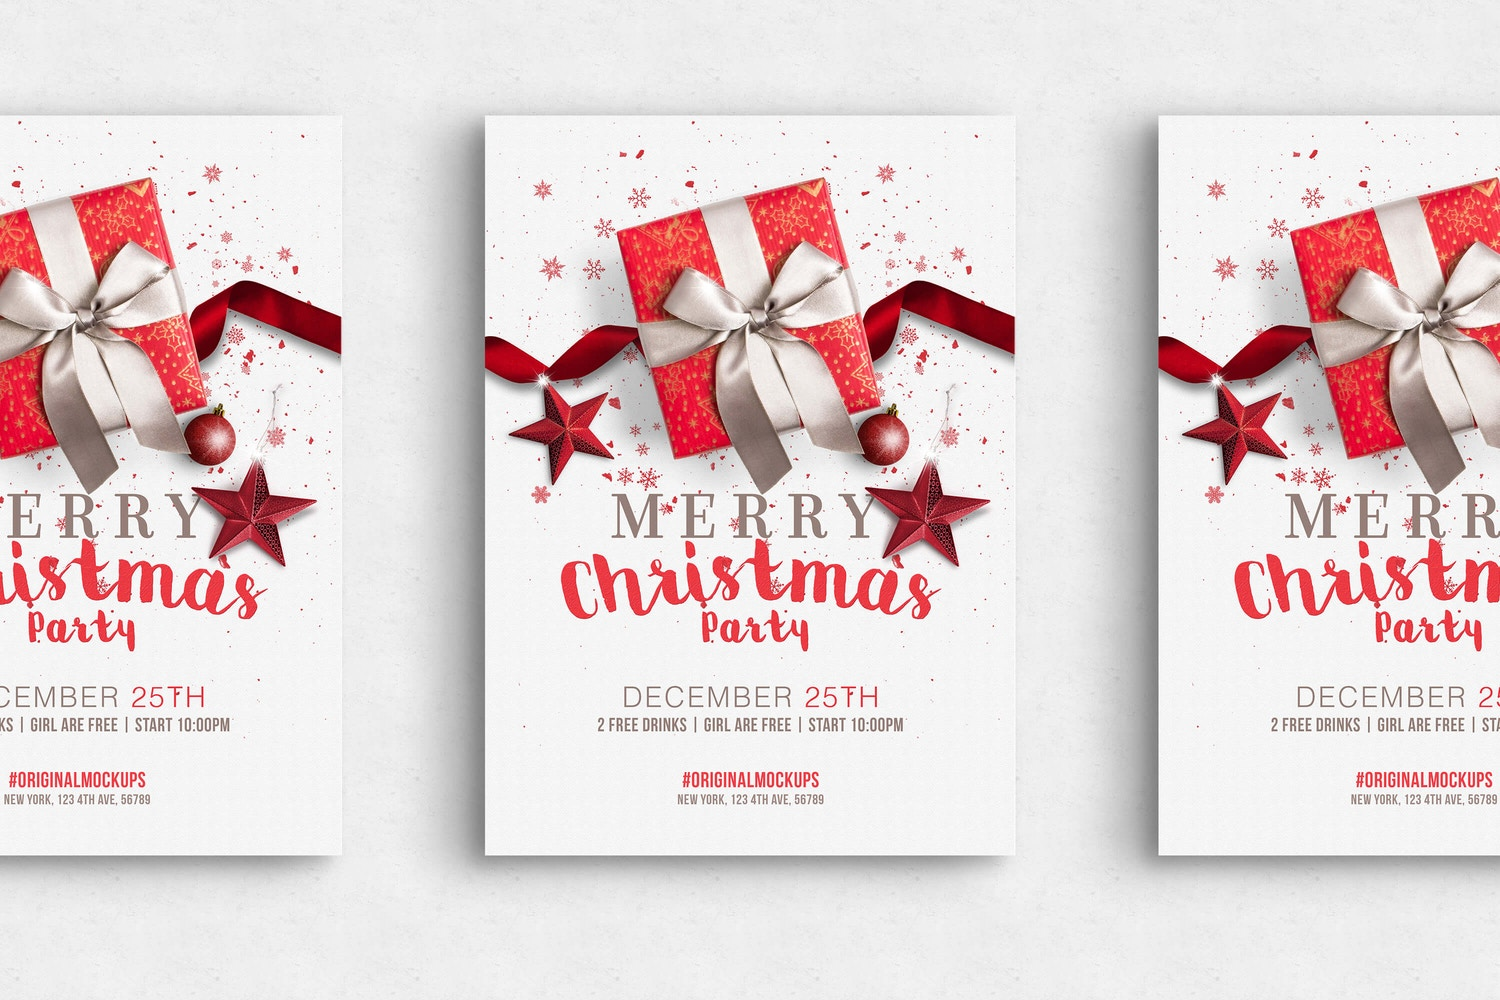 merry christmas party flyer poster original mockups